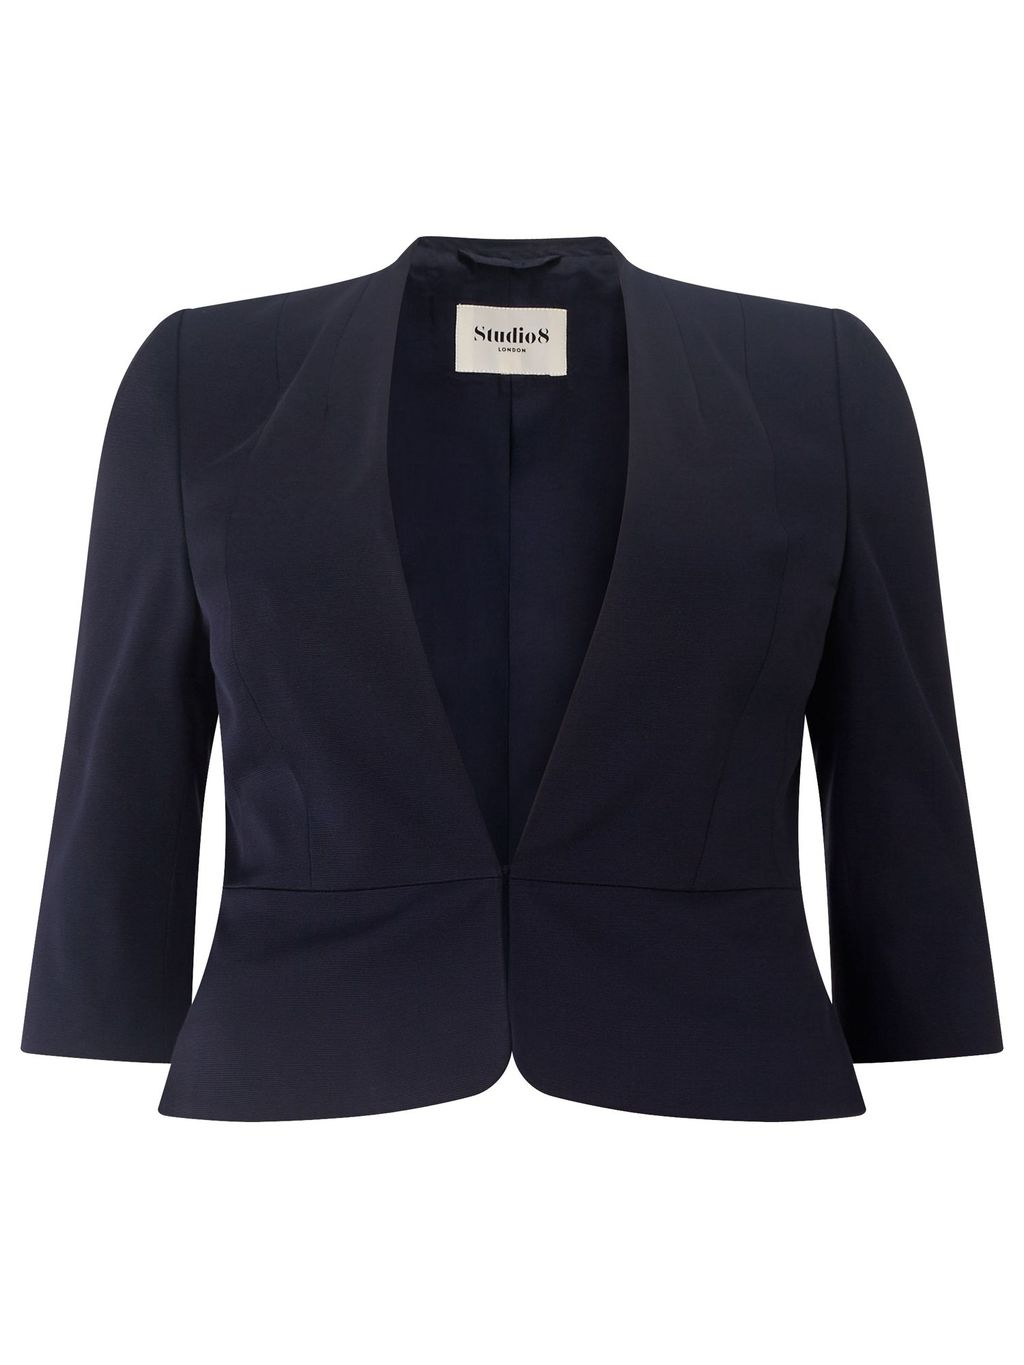 Odette Jacket, Navy - pattern: plain; style: single breasted blazer; collar: round collar/collarless; predominant colour: navy; occasions: evening, occasion; length: standard; fit: tailored/fitted; fibres: viscose/rayon - stretch; sleeve length: 3/4 length; sleeve style: standard; collar break: low/open; pattern type: fabric; texture group: woven light midweight; season: s/s 2016; wardrobe: event